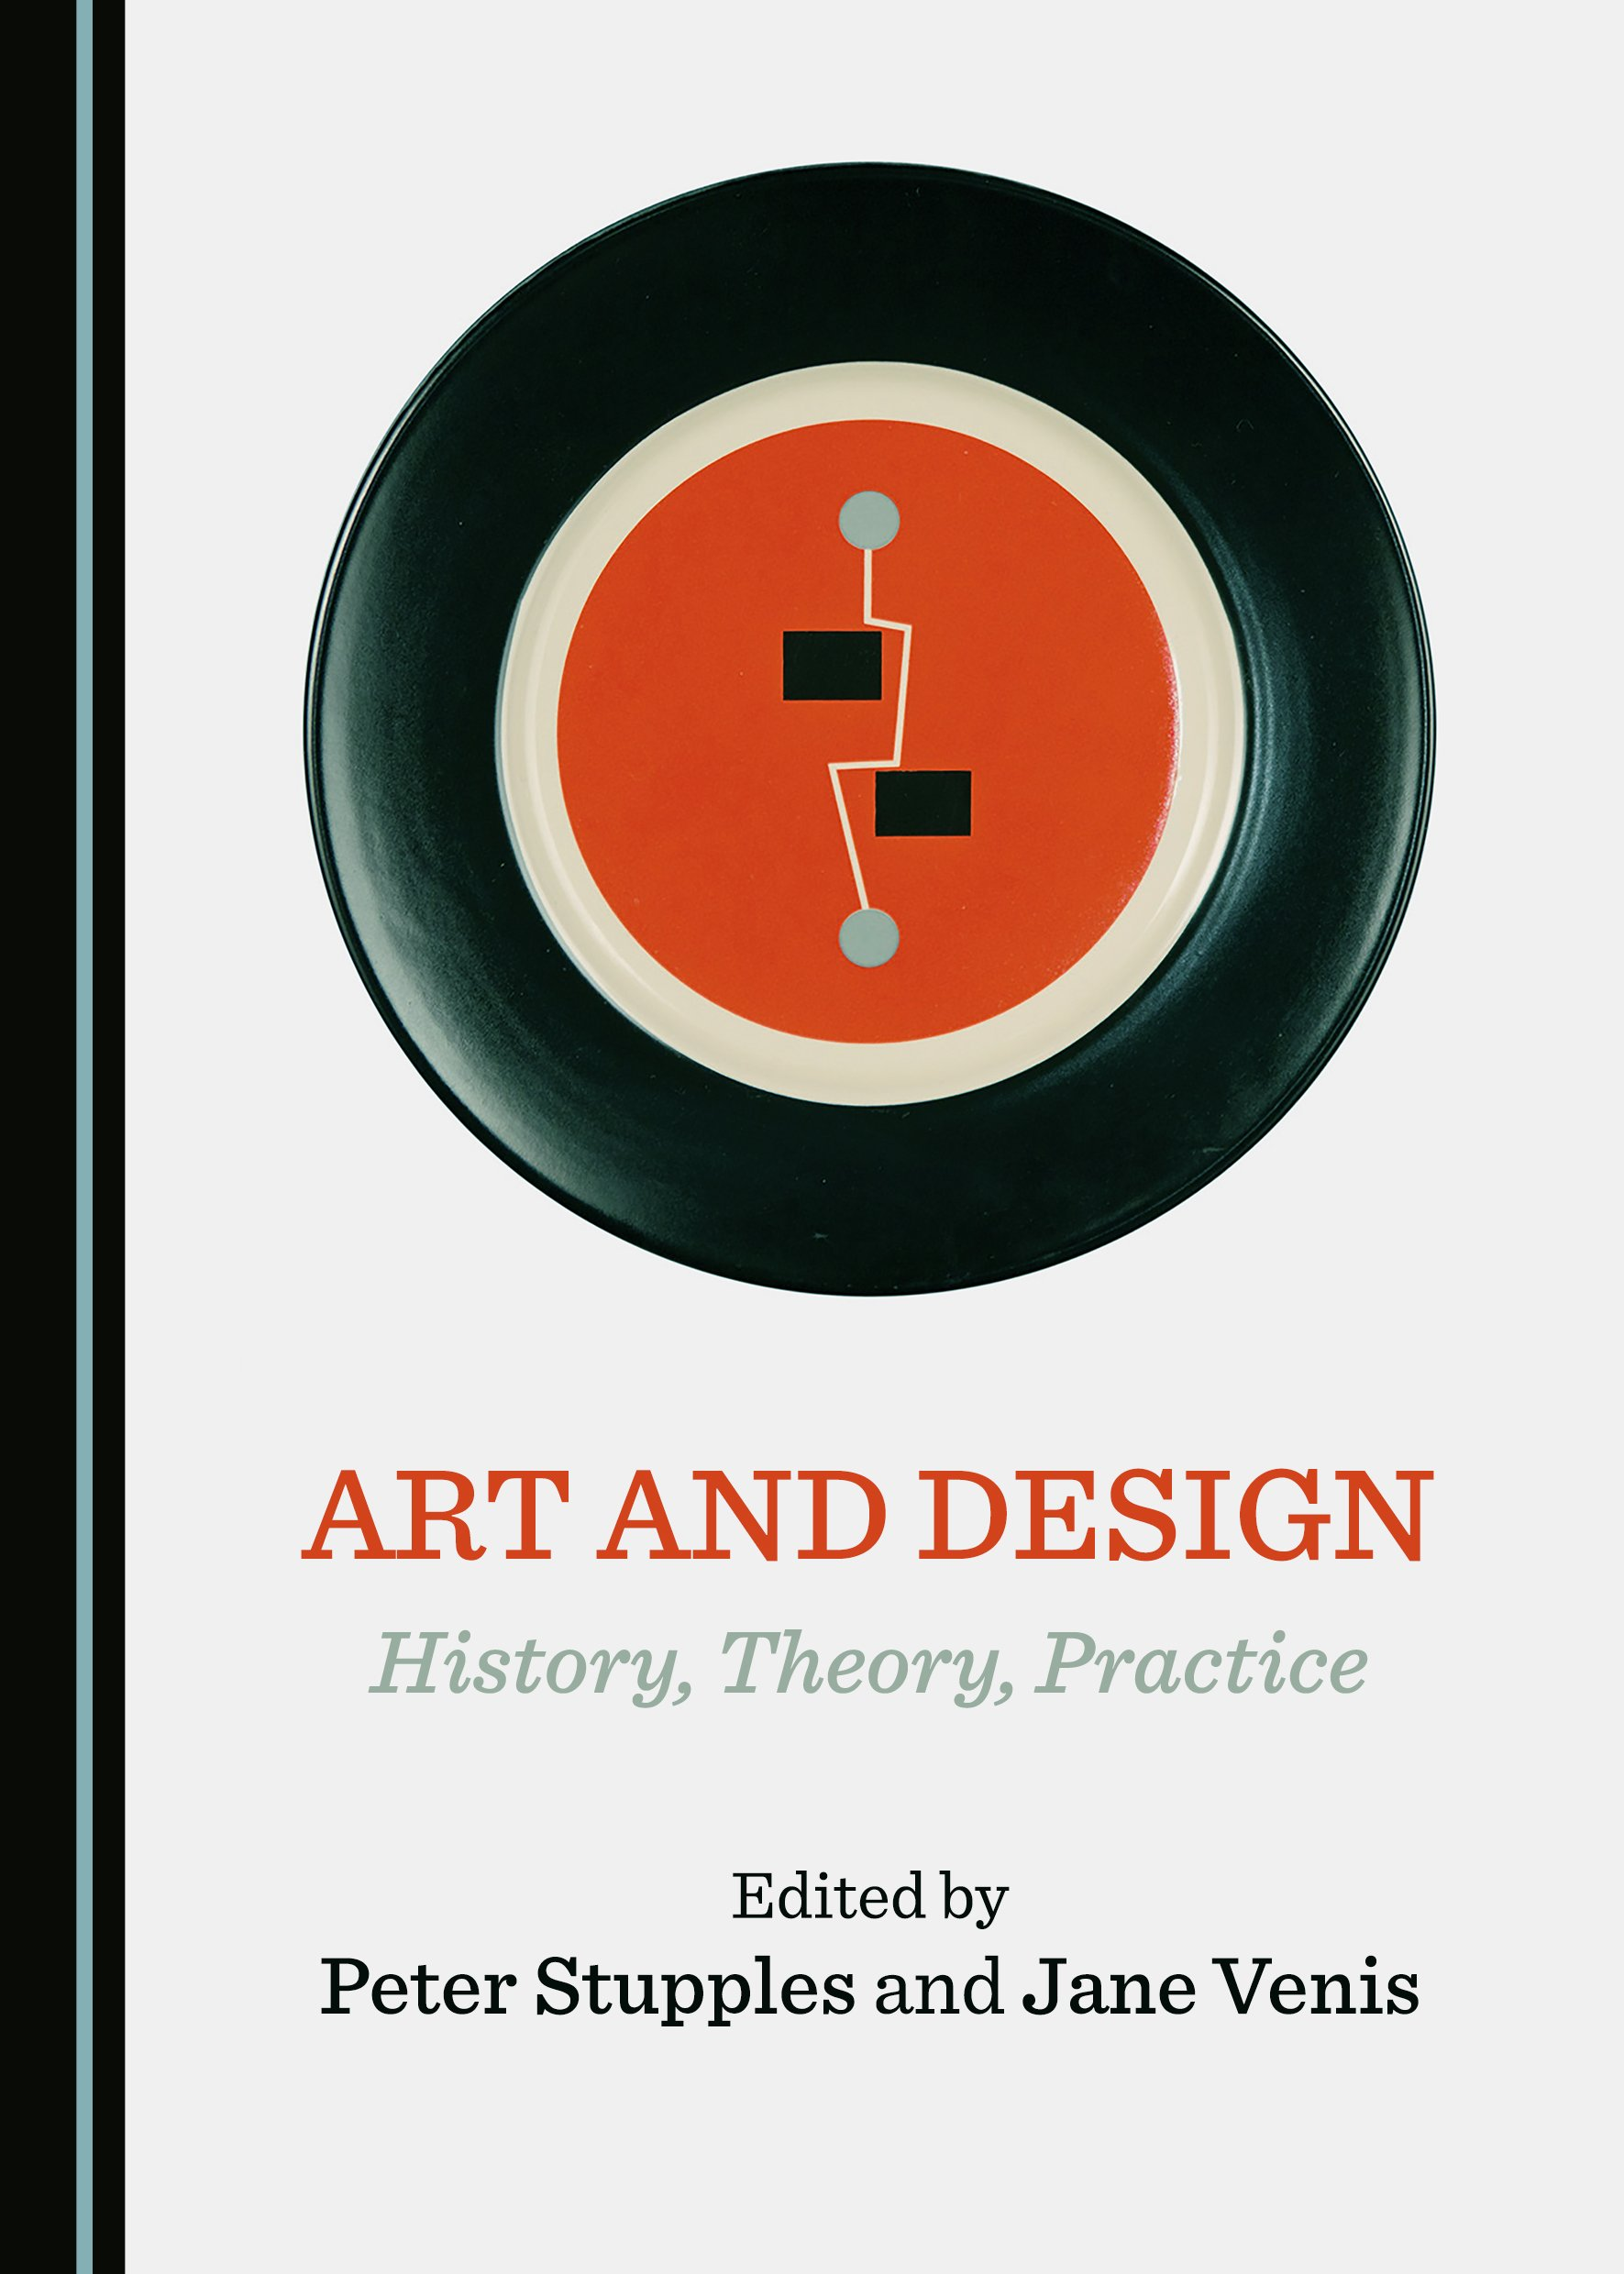 Art and Design: History, Theory, Practice